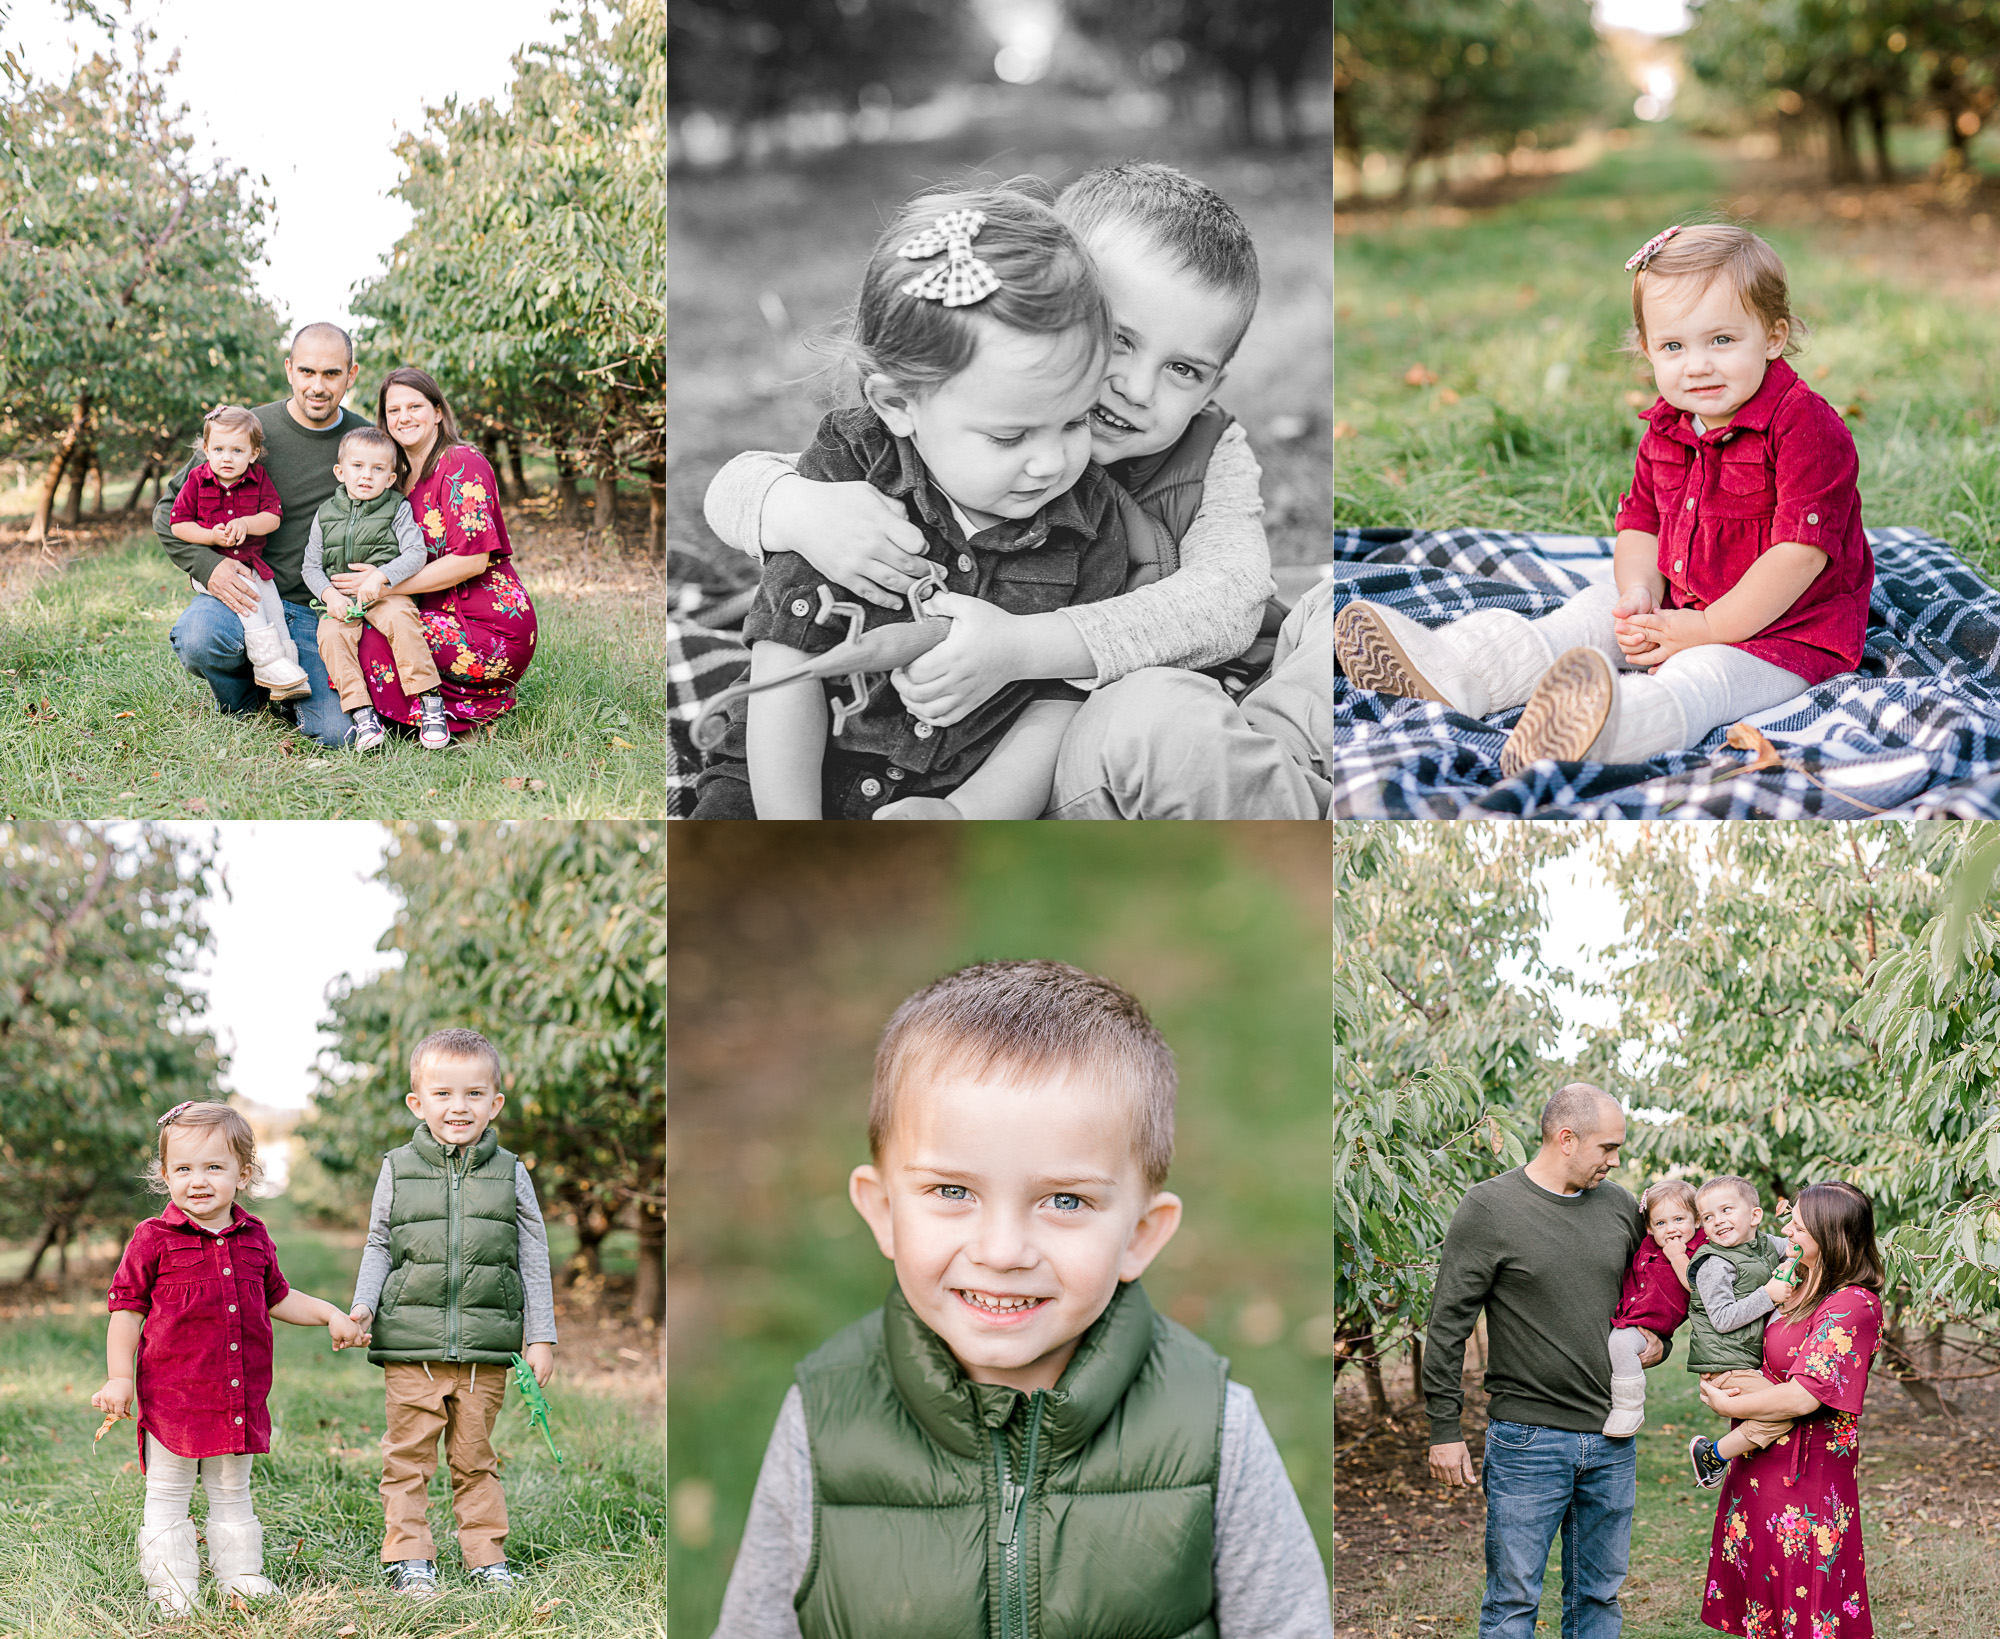 Fall Family Mini Sessions   Apple Orchard   Family Session What to Wear   Lifestyle Family Photography   West Michigan Family Photographer